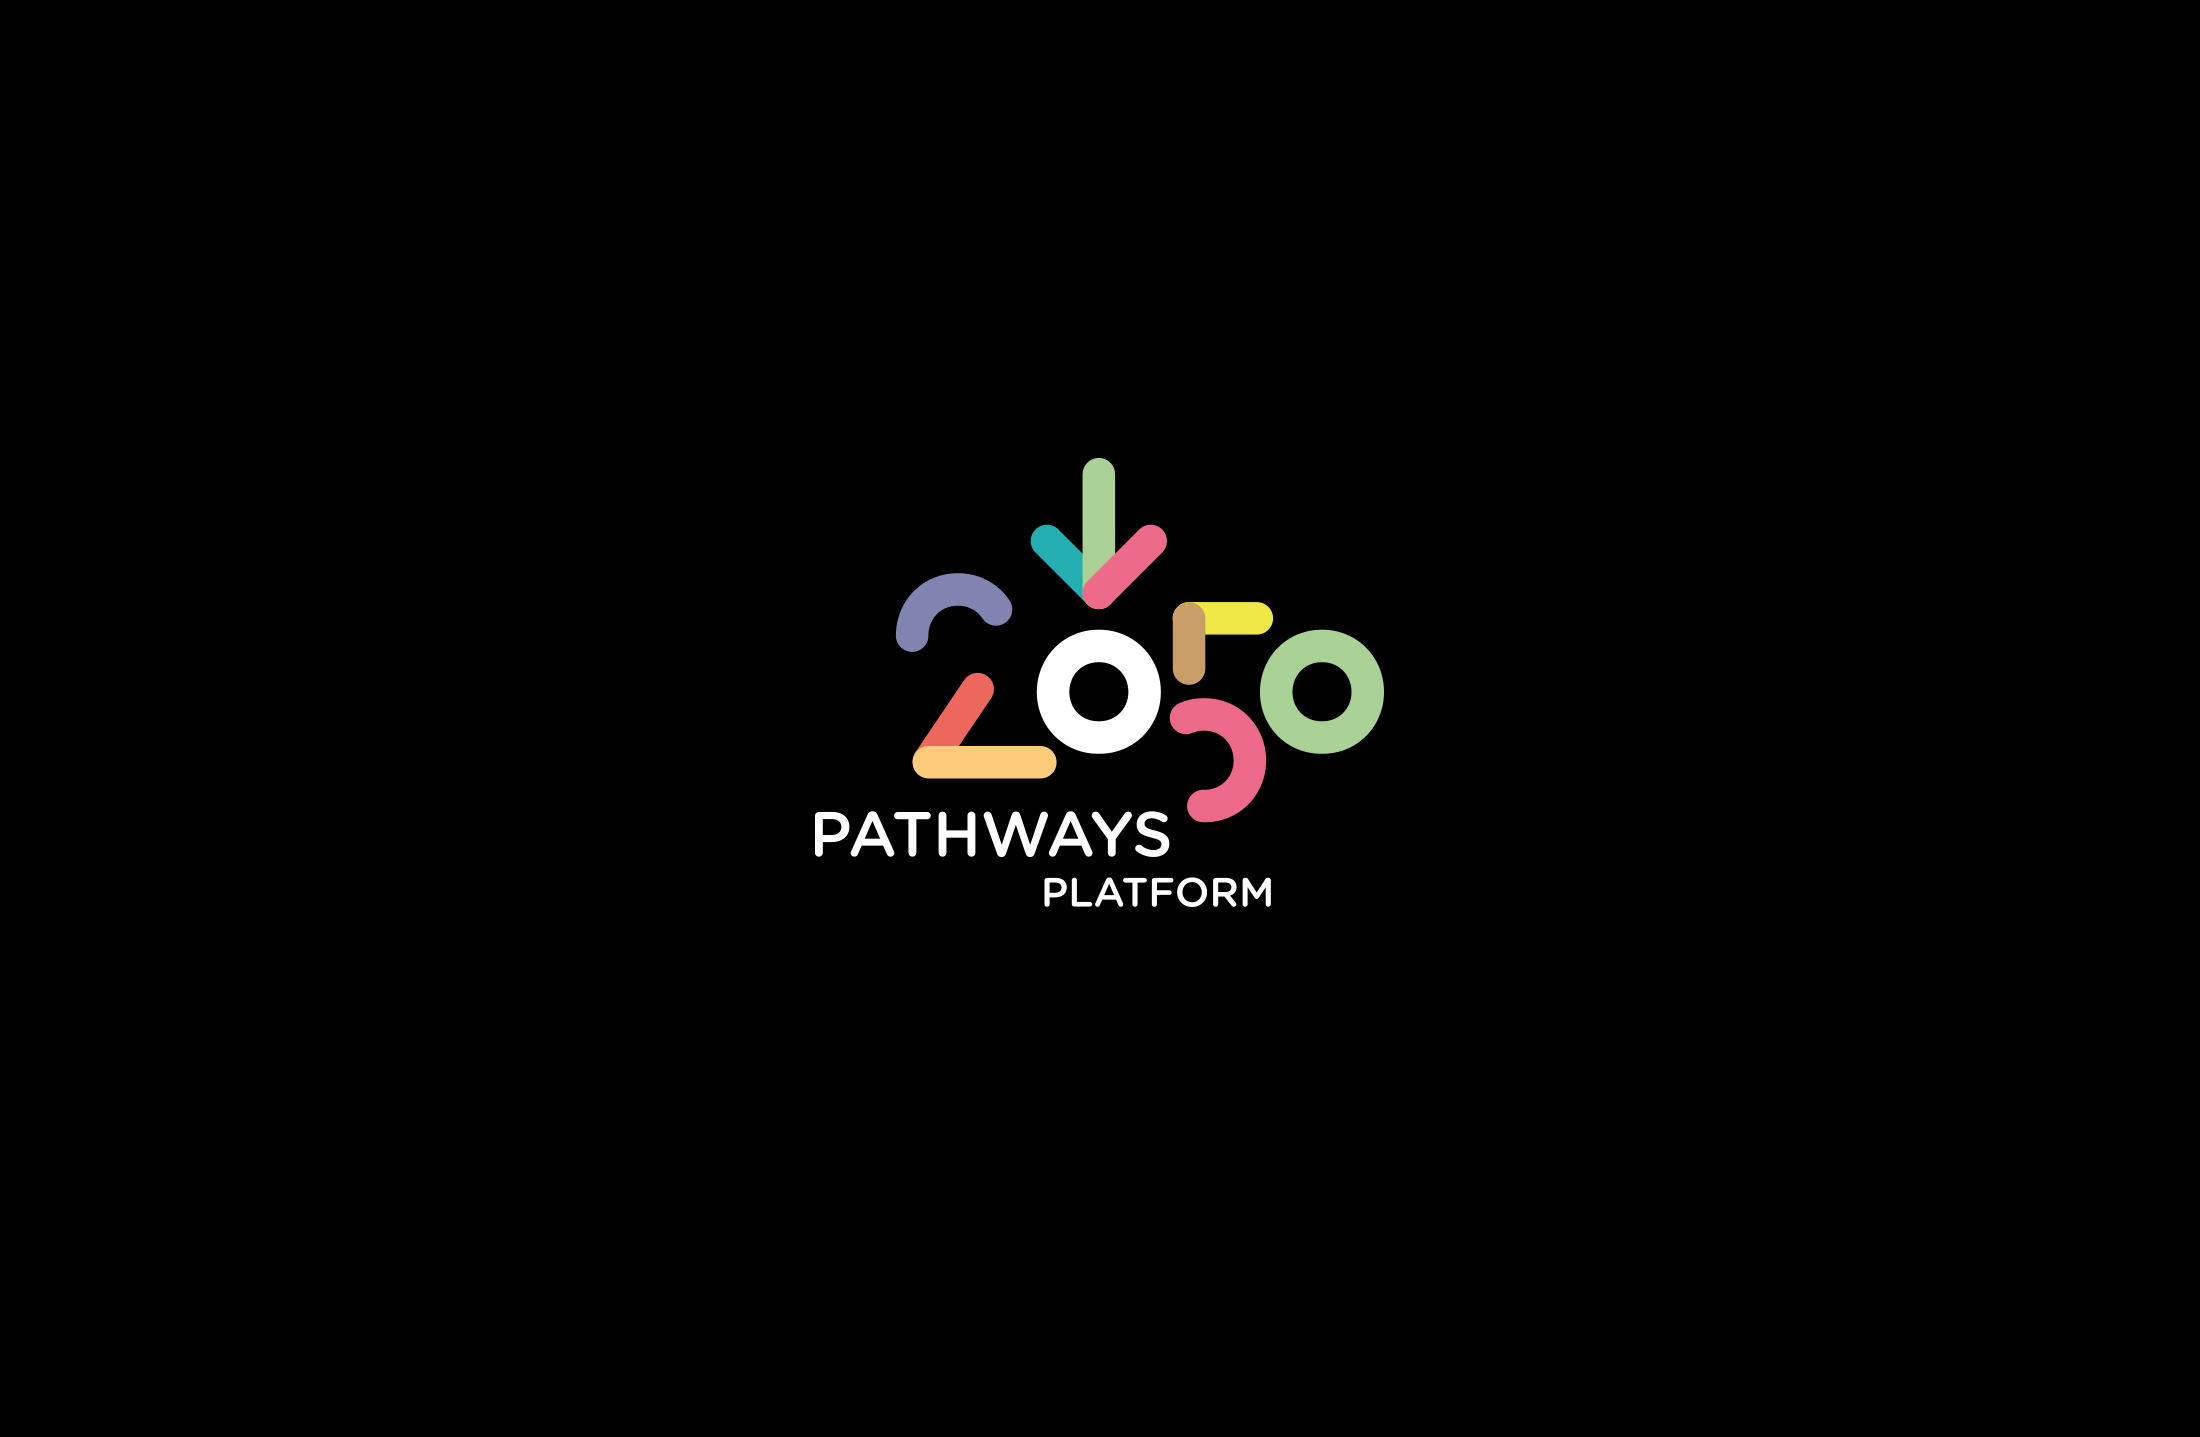 2050 pathways logo